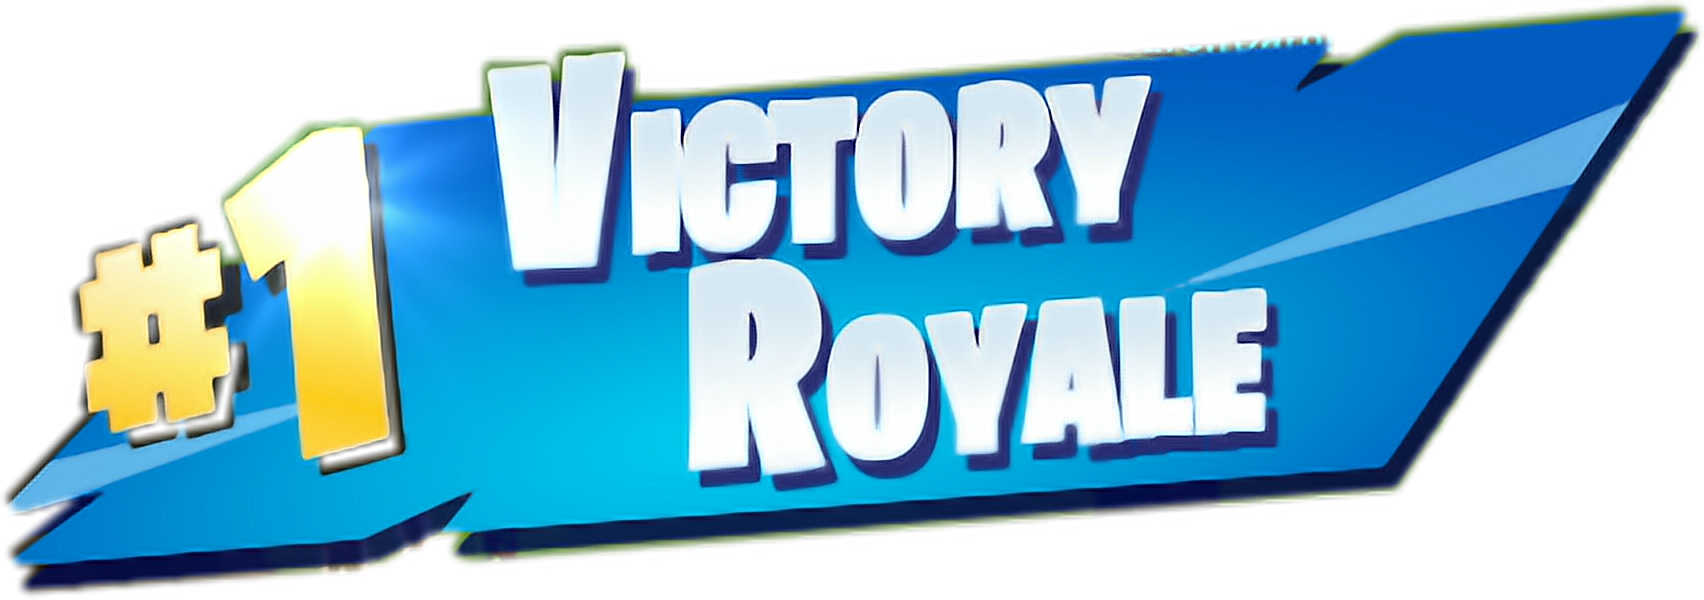 #1 victory royale png. Freetoedit sticker by